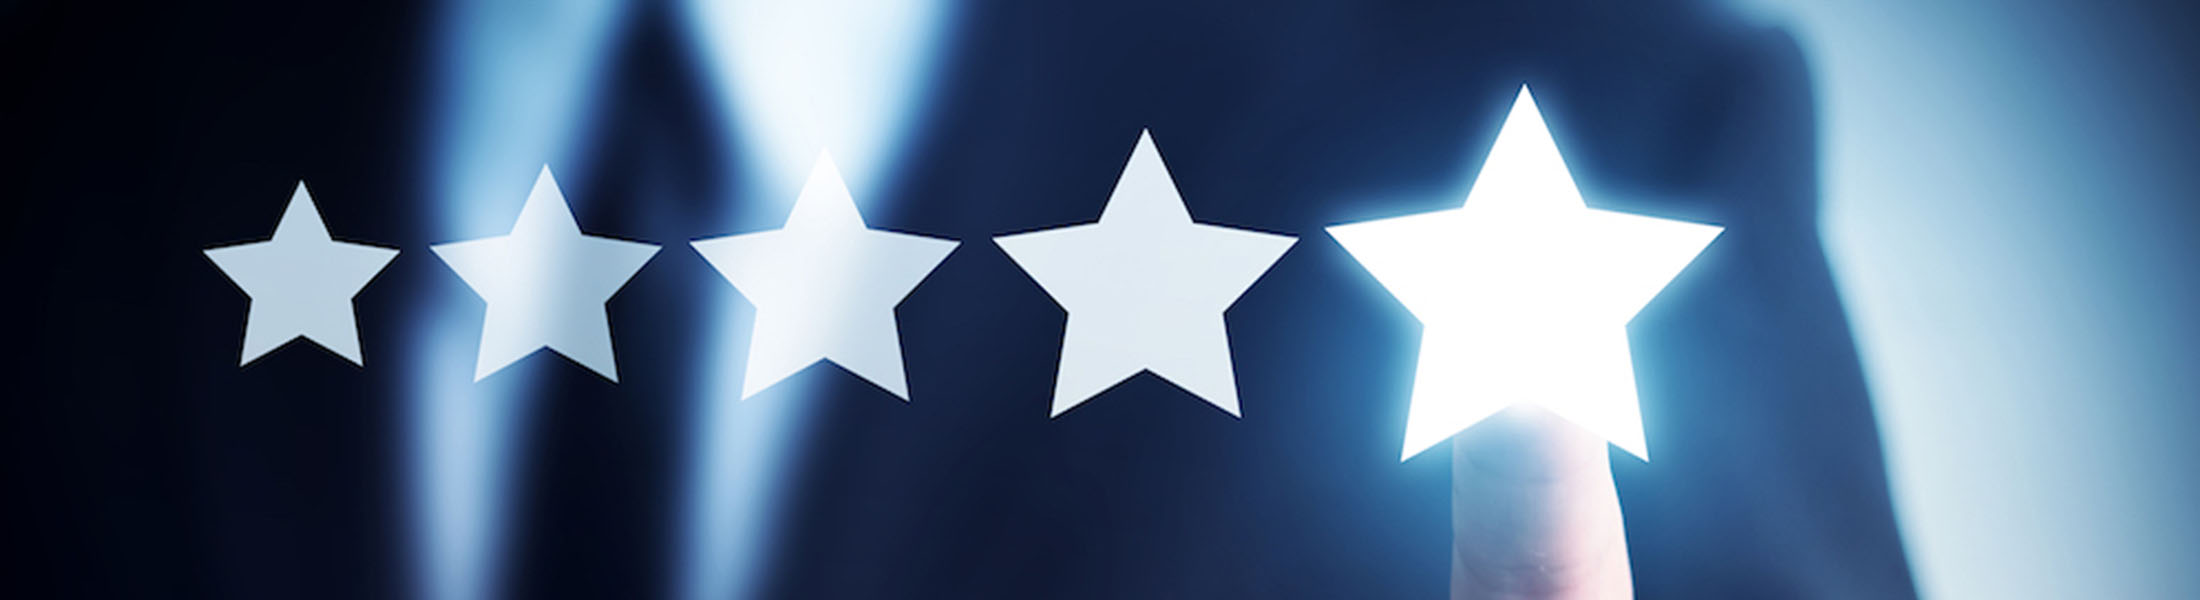 review banner stor